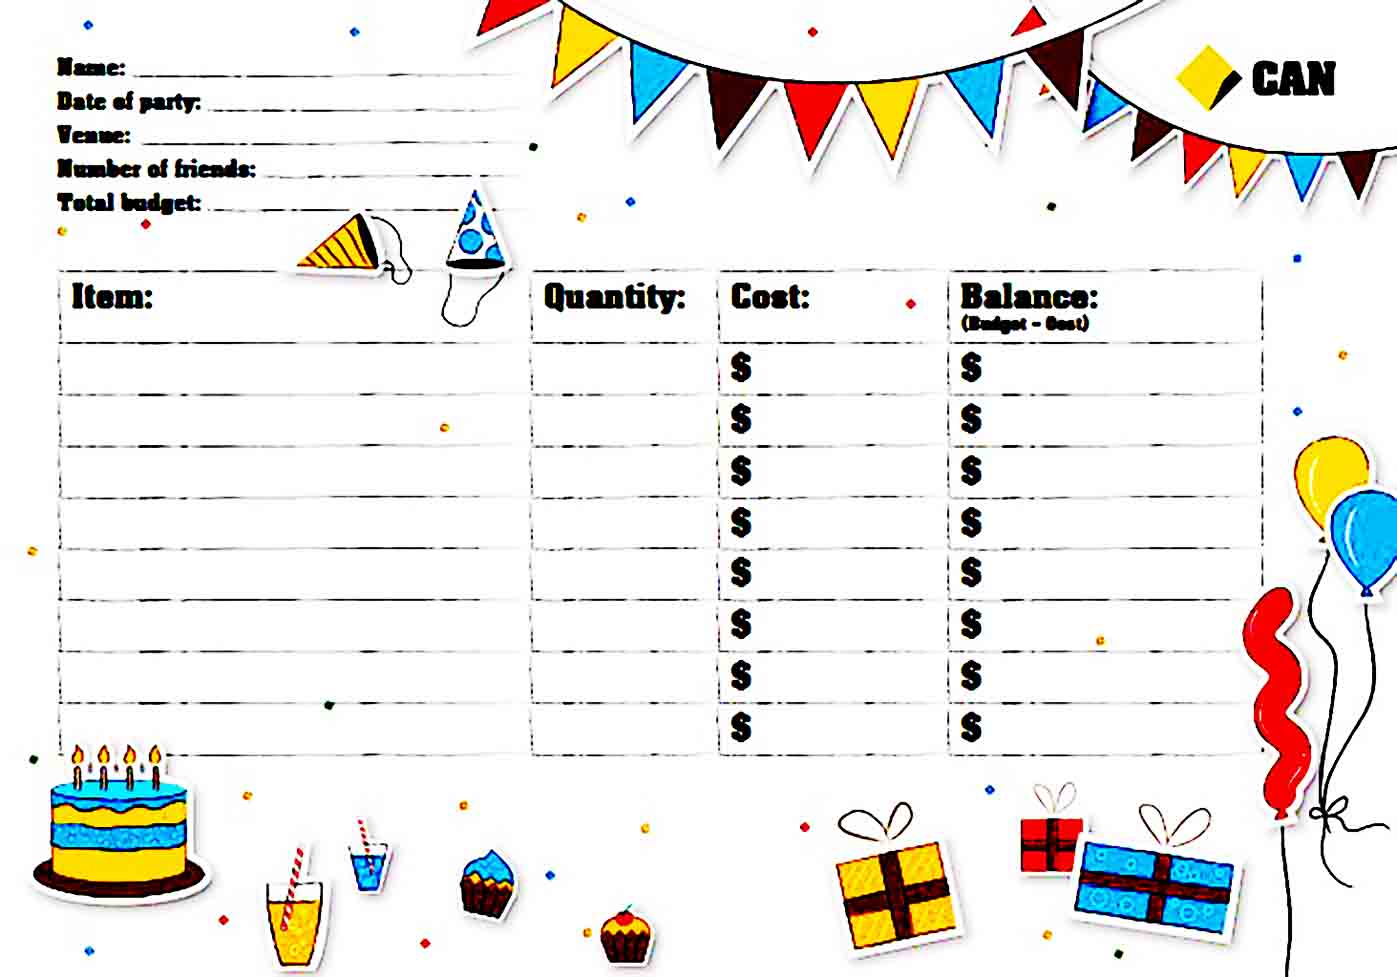 Party Planner Budget Template